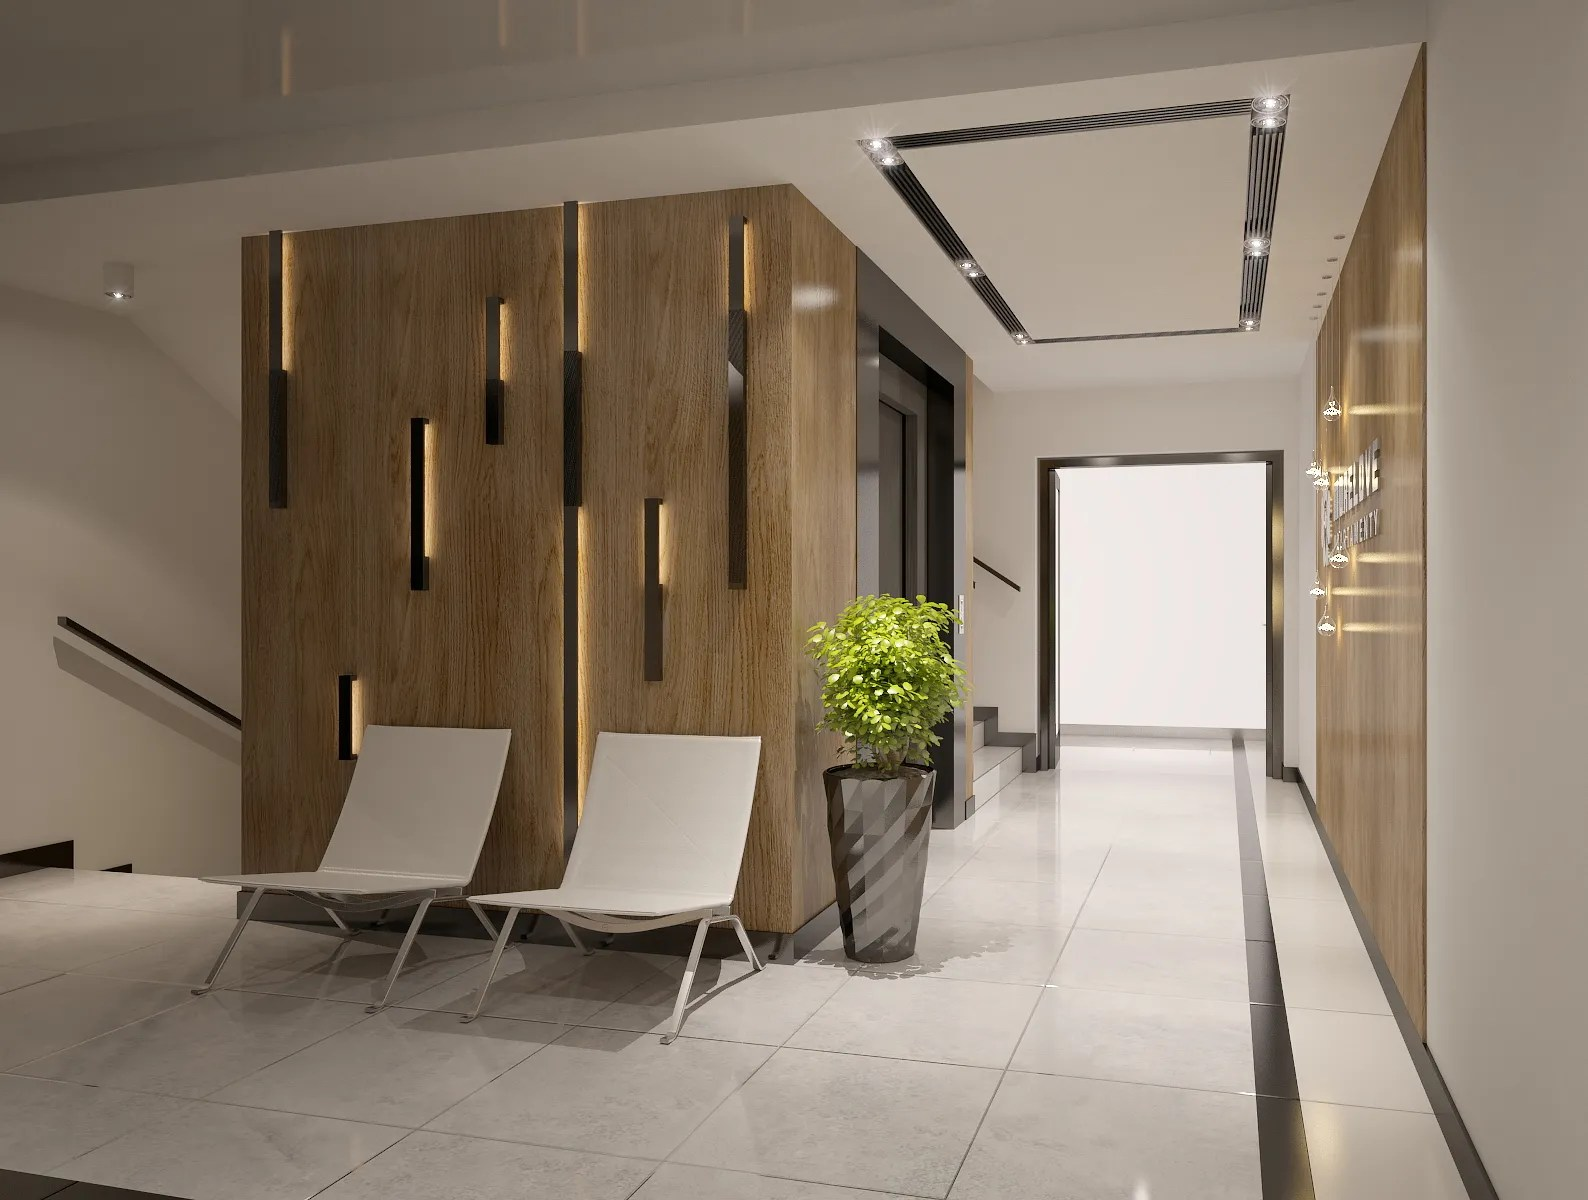 Interior Design Of Apartments Building Entrance Ha 3D Model – Buy